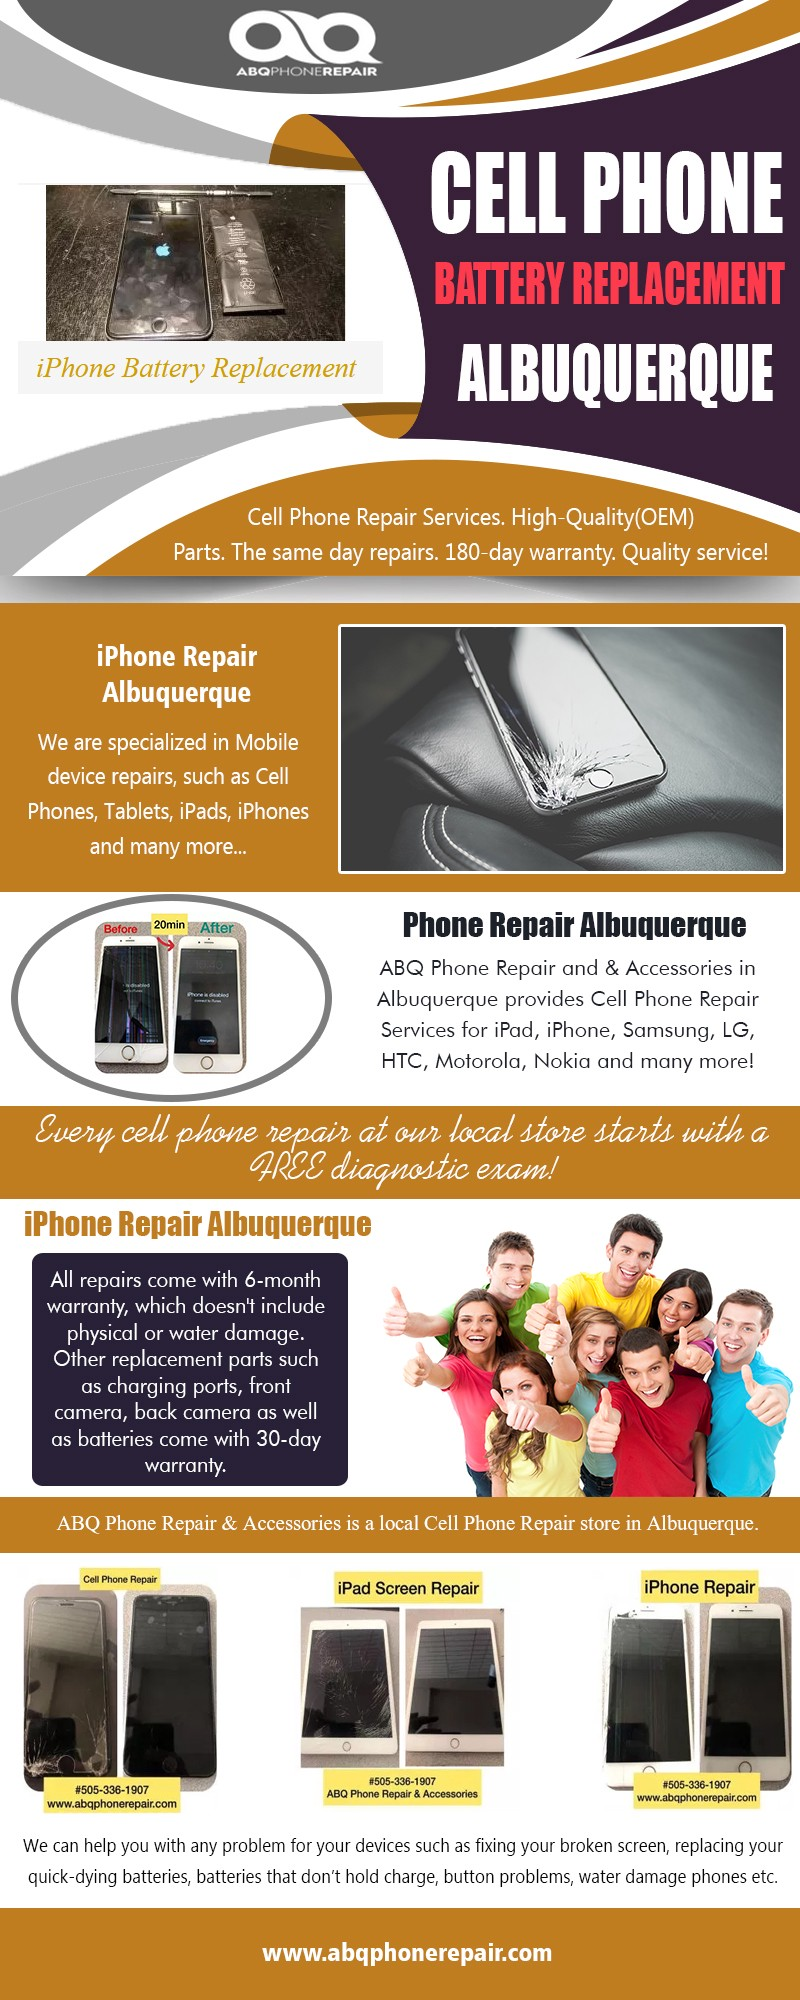 Cell Phone Repair Albuquerque >> Iphone Battery Replacement Albuquerque Call 505 336 1907